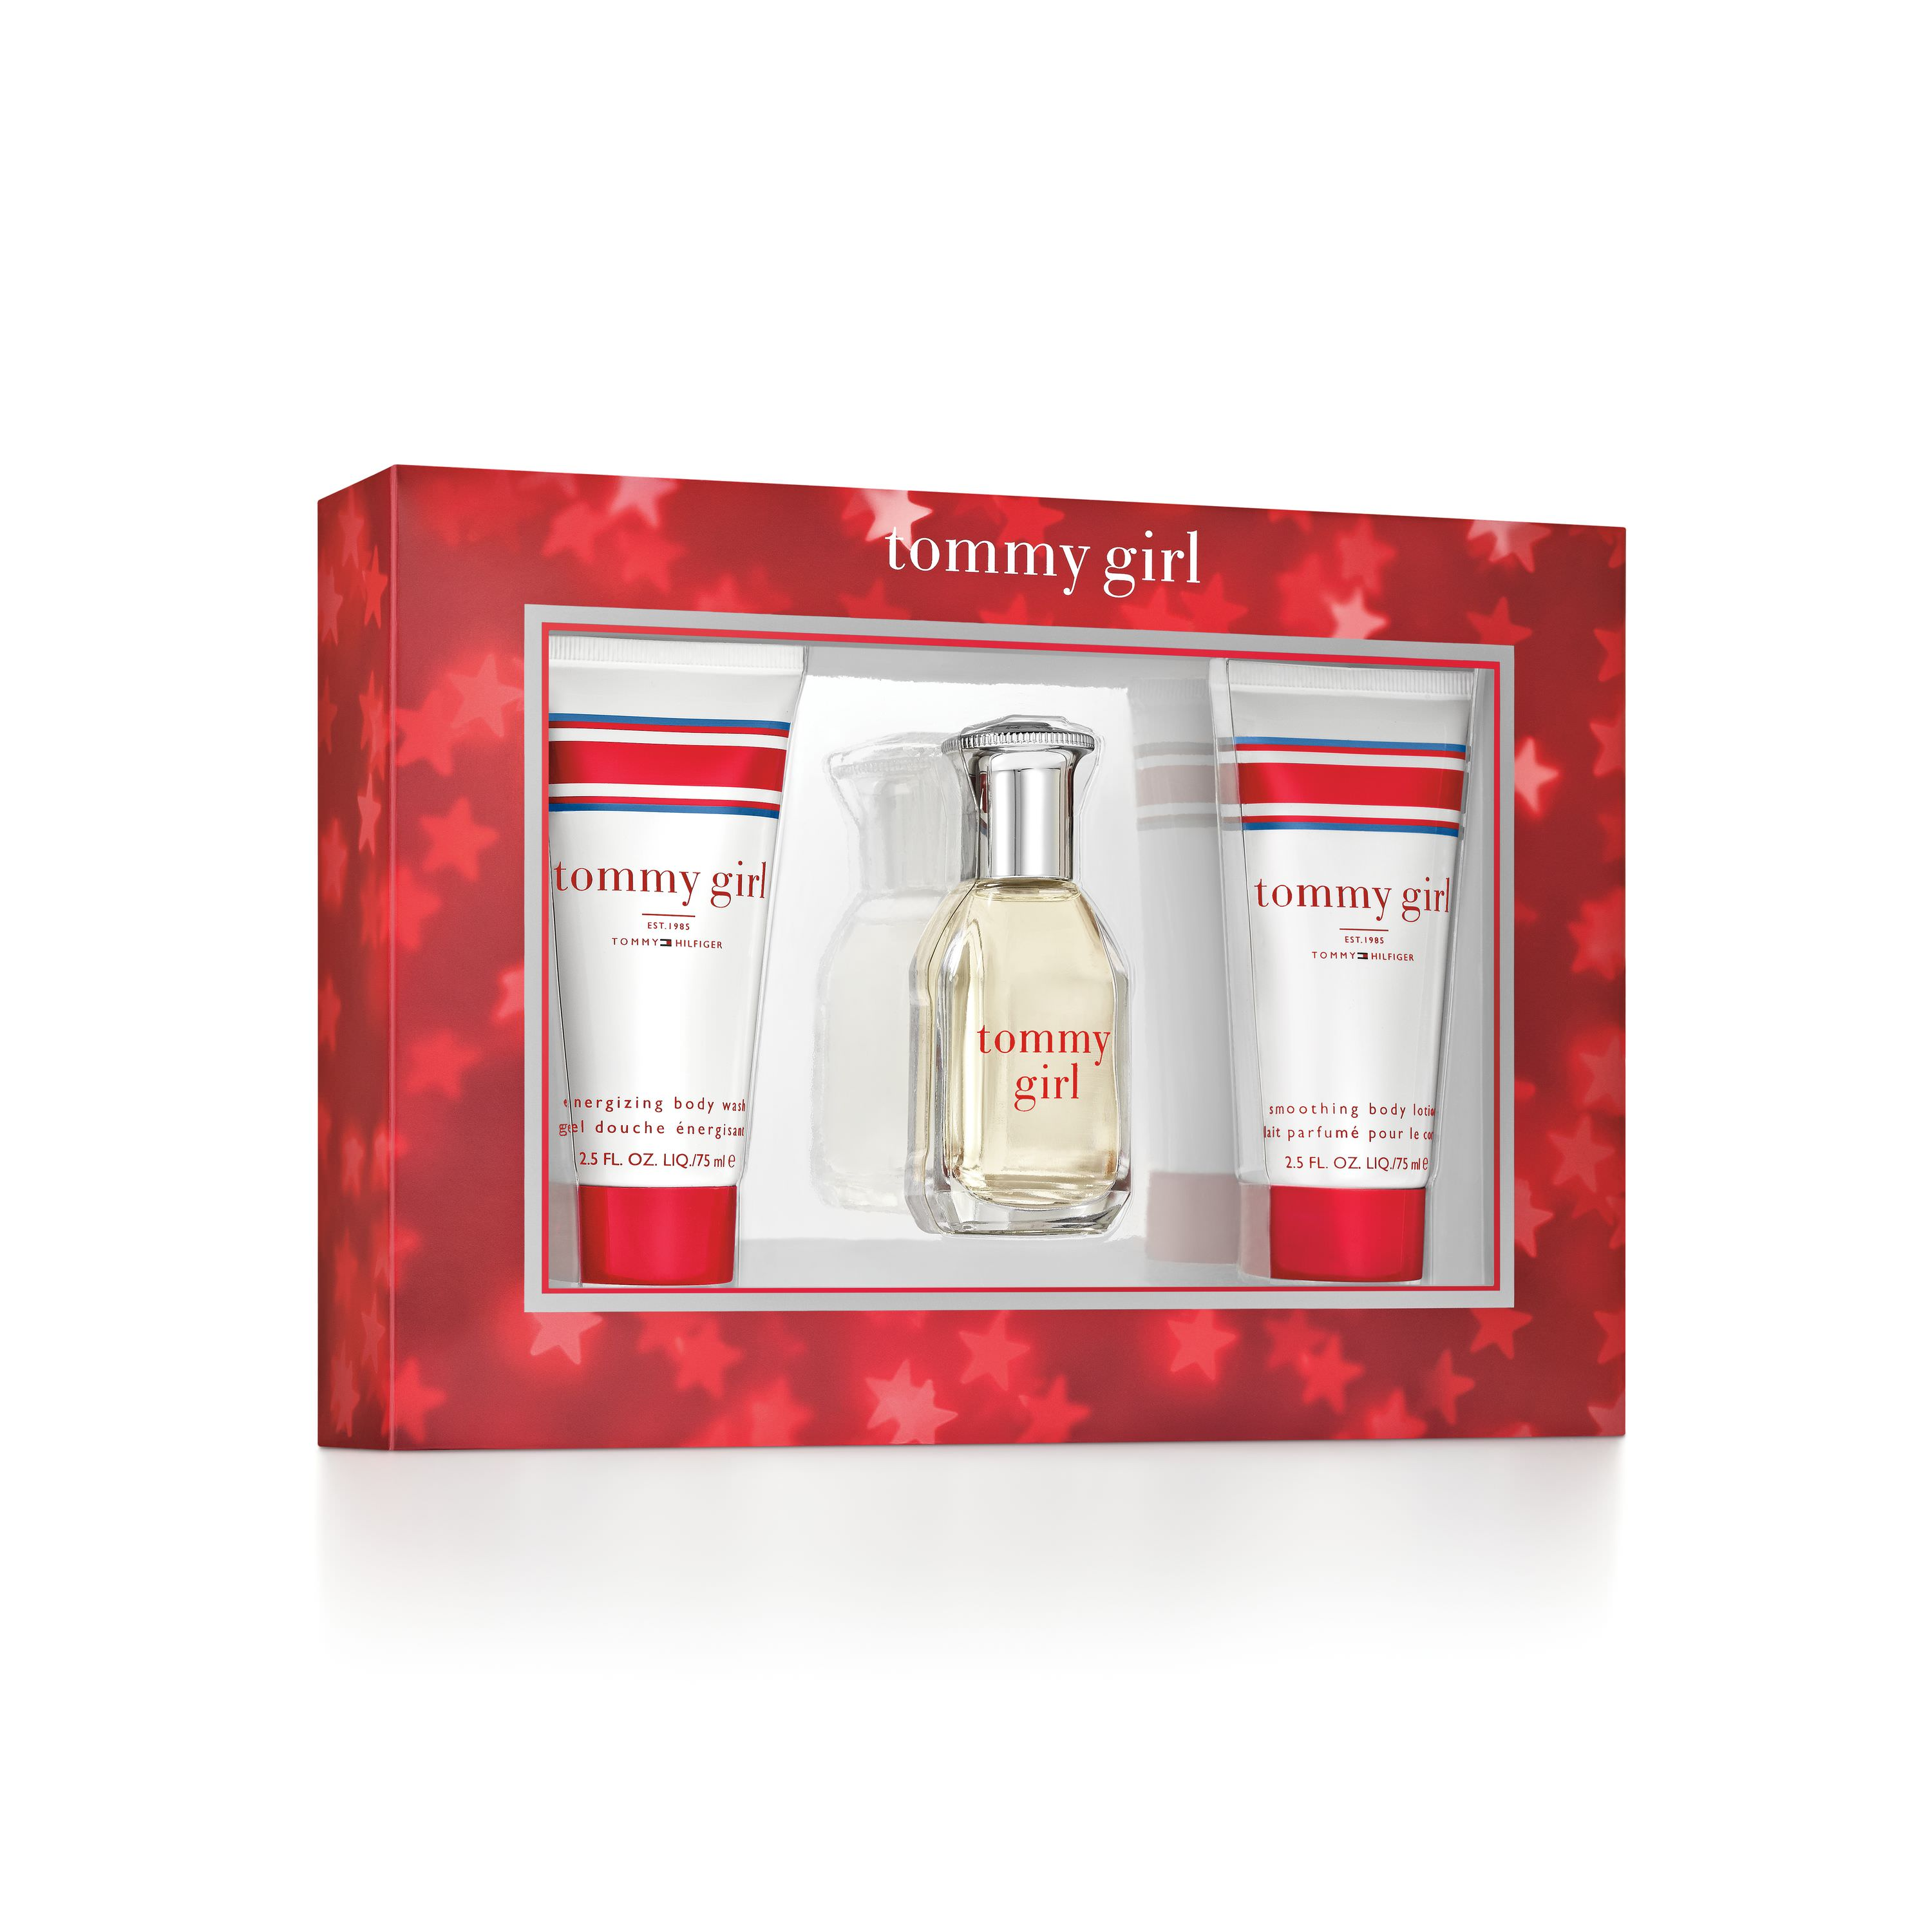 Tommy Hilfiger Tommy Girl Perfume Gift Set for Women, 3 piece